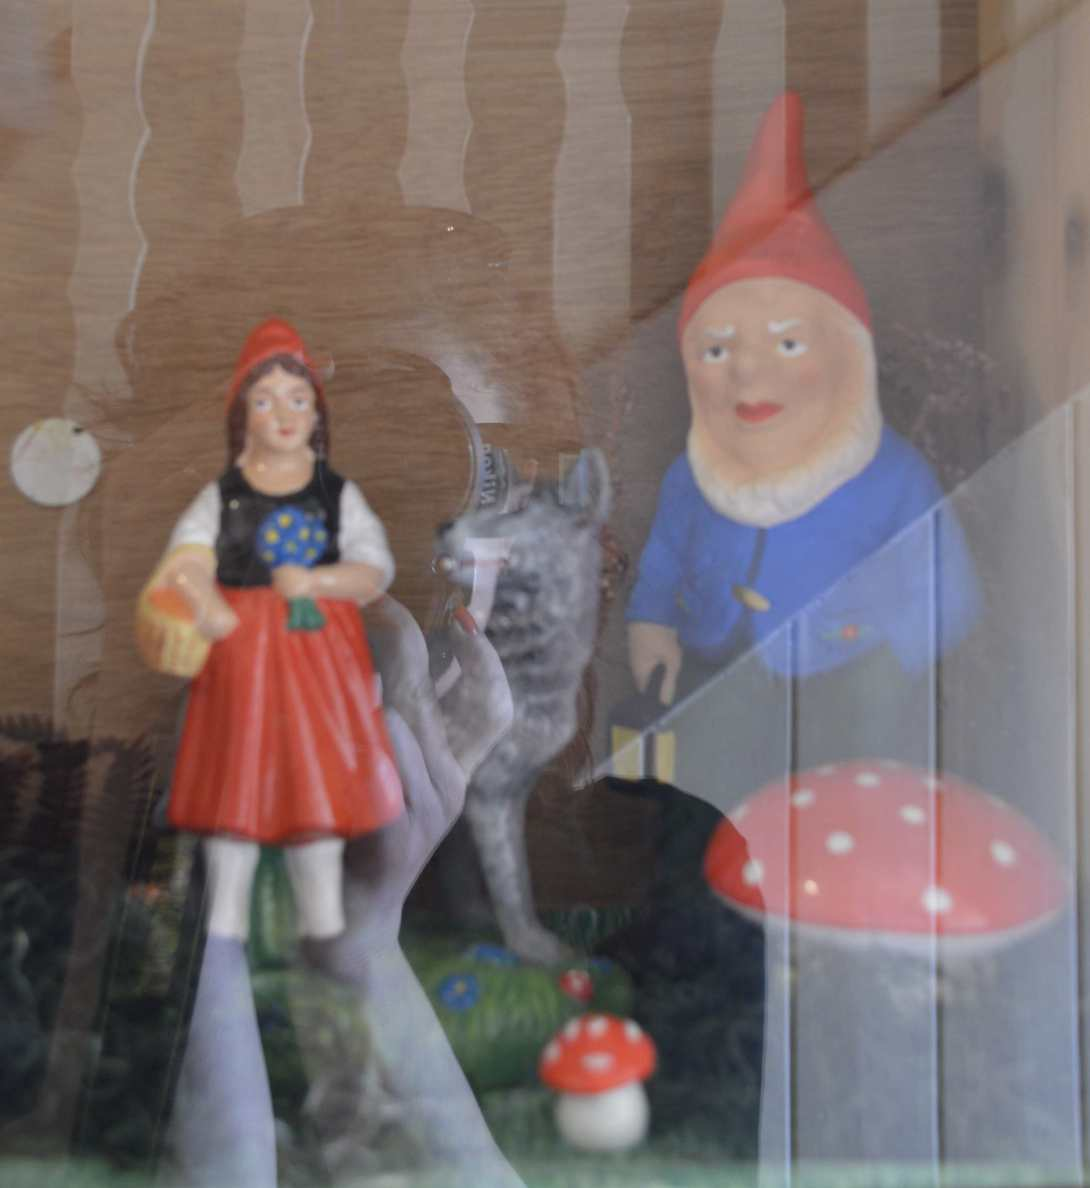 garden gnome museum in thuringia Germany birthplace of the gnome